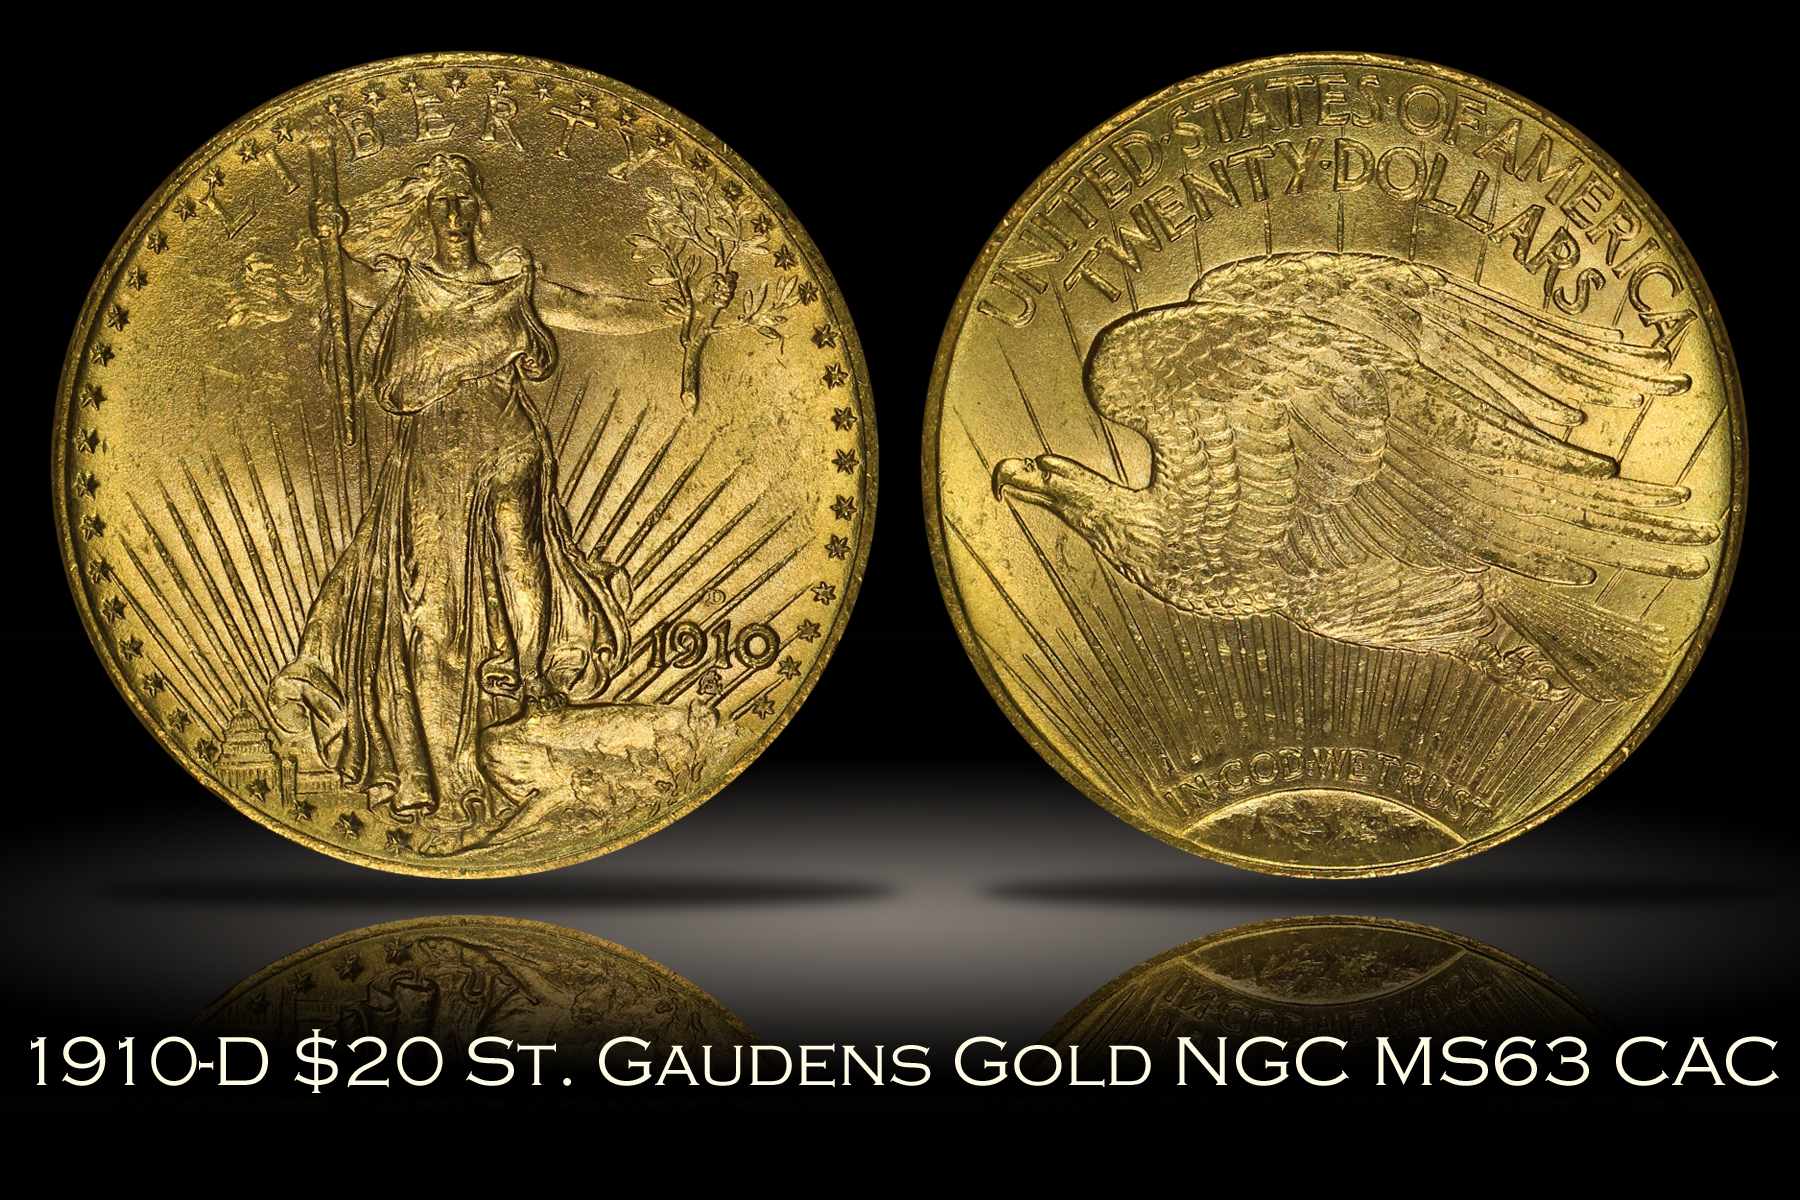 1910-D $20 St. Gaudens Gold NGC MS63 Old Holder